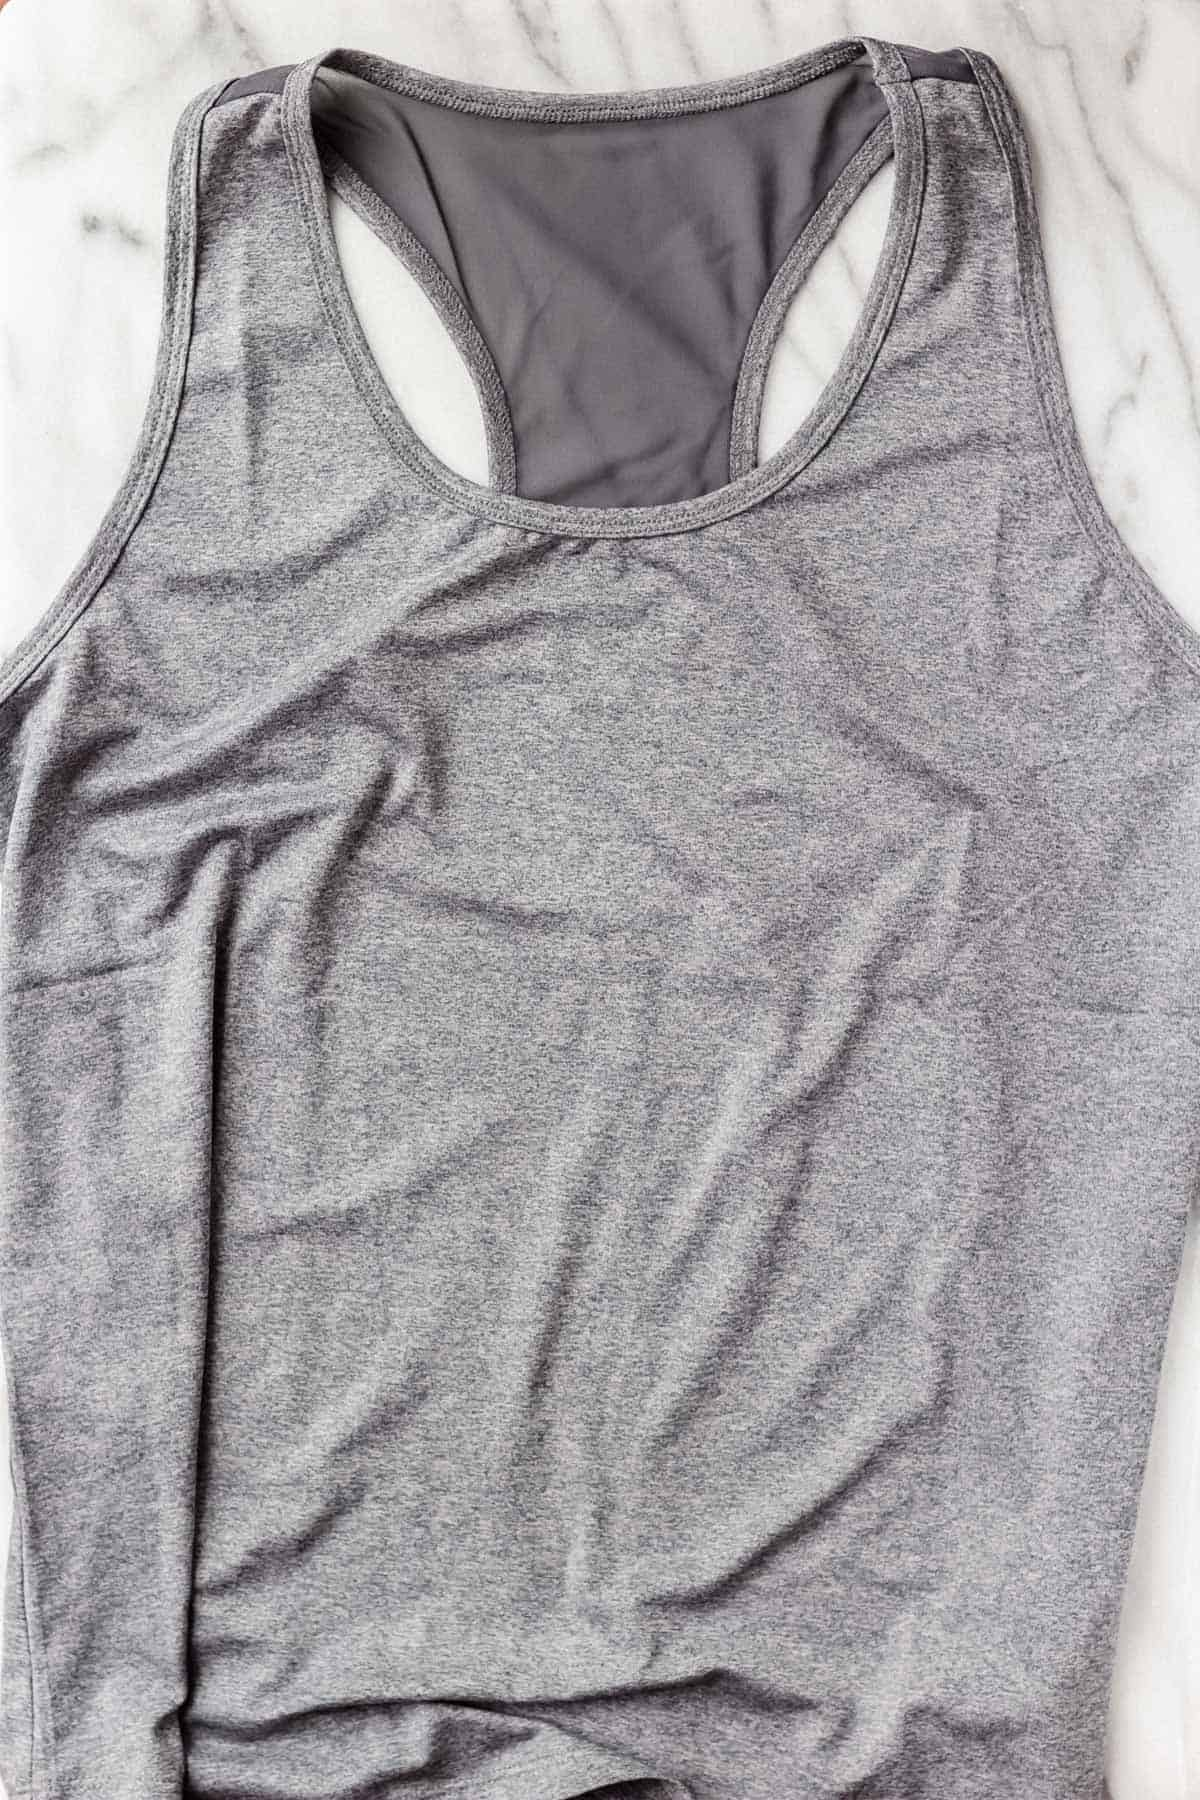 Jessica Simpson Excel Active Tank in Heather Ombre Blue on a marble background